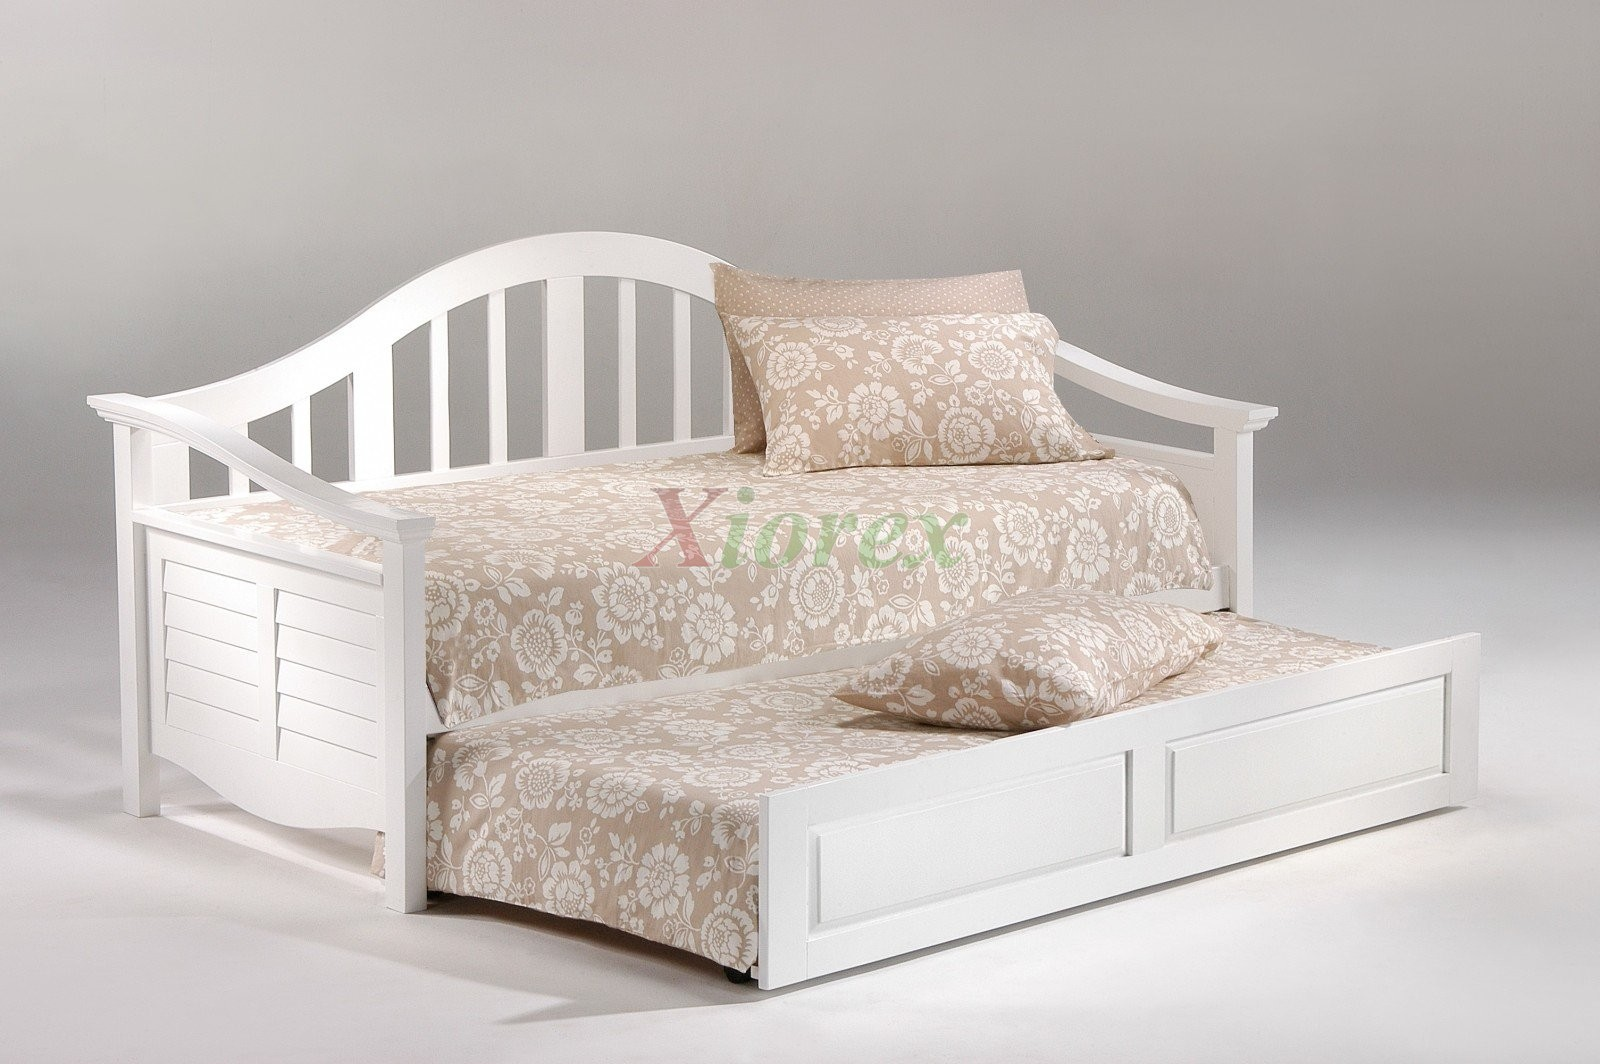 Seagull daybed twin size white day bed with trundle bed for Beds with trundle